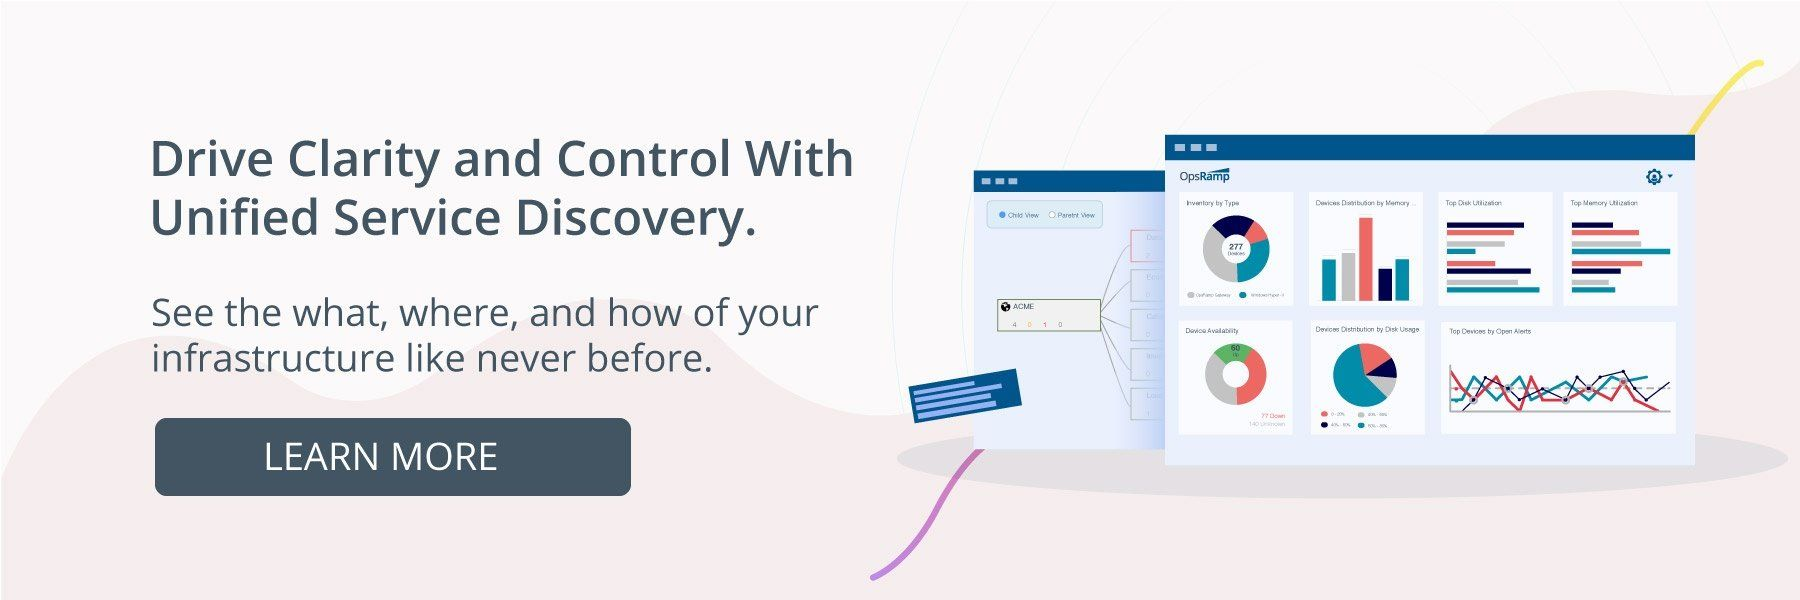 Unified Service Discovery